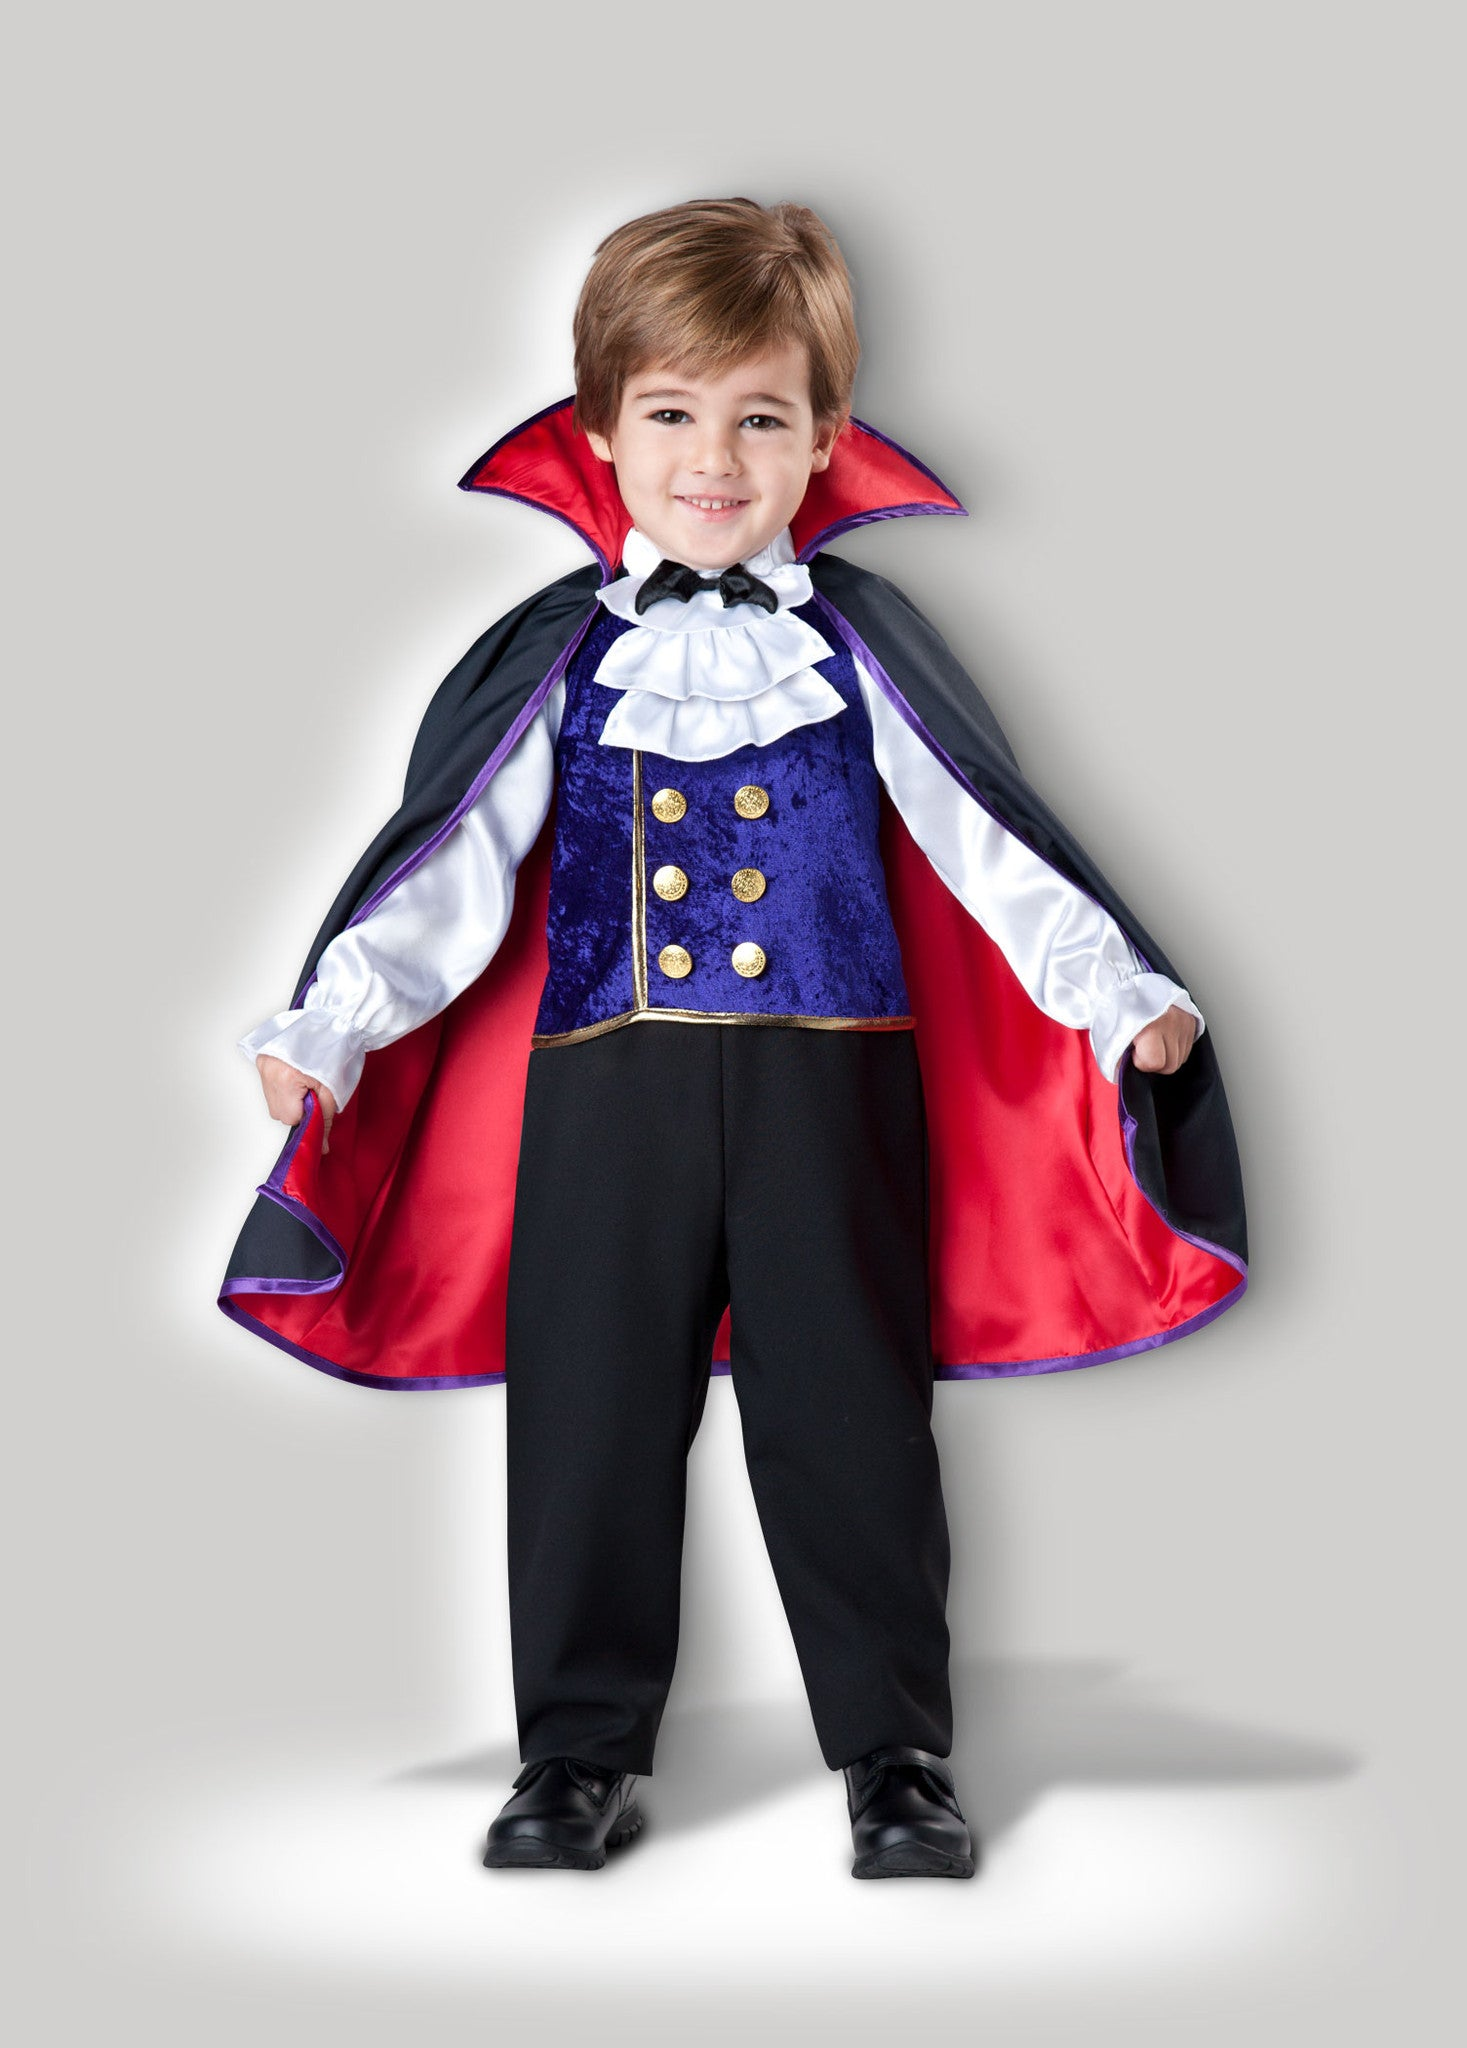 V&ire CY60004  sc 1 st  InCharacter Costumes & Deluxe Child Vampire Costume u2013 InCharacter Costumes